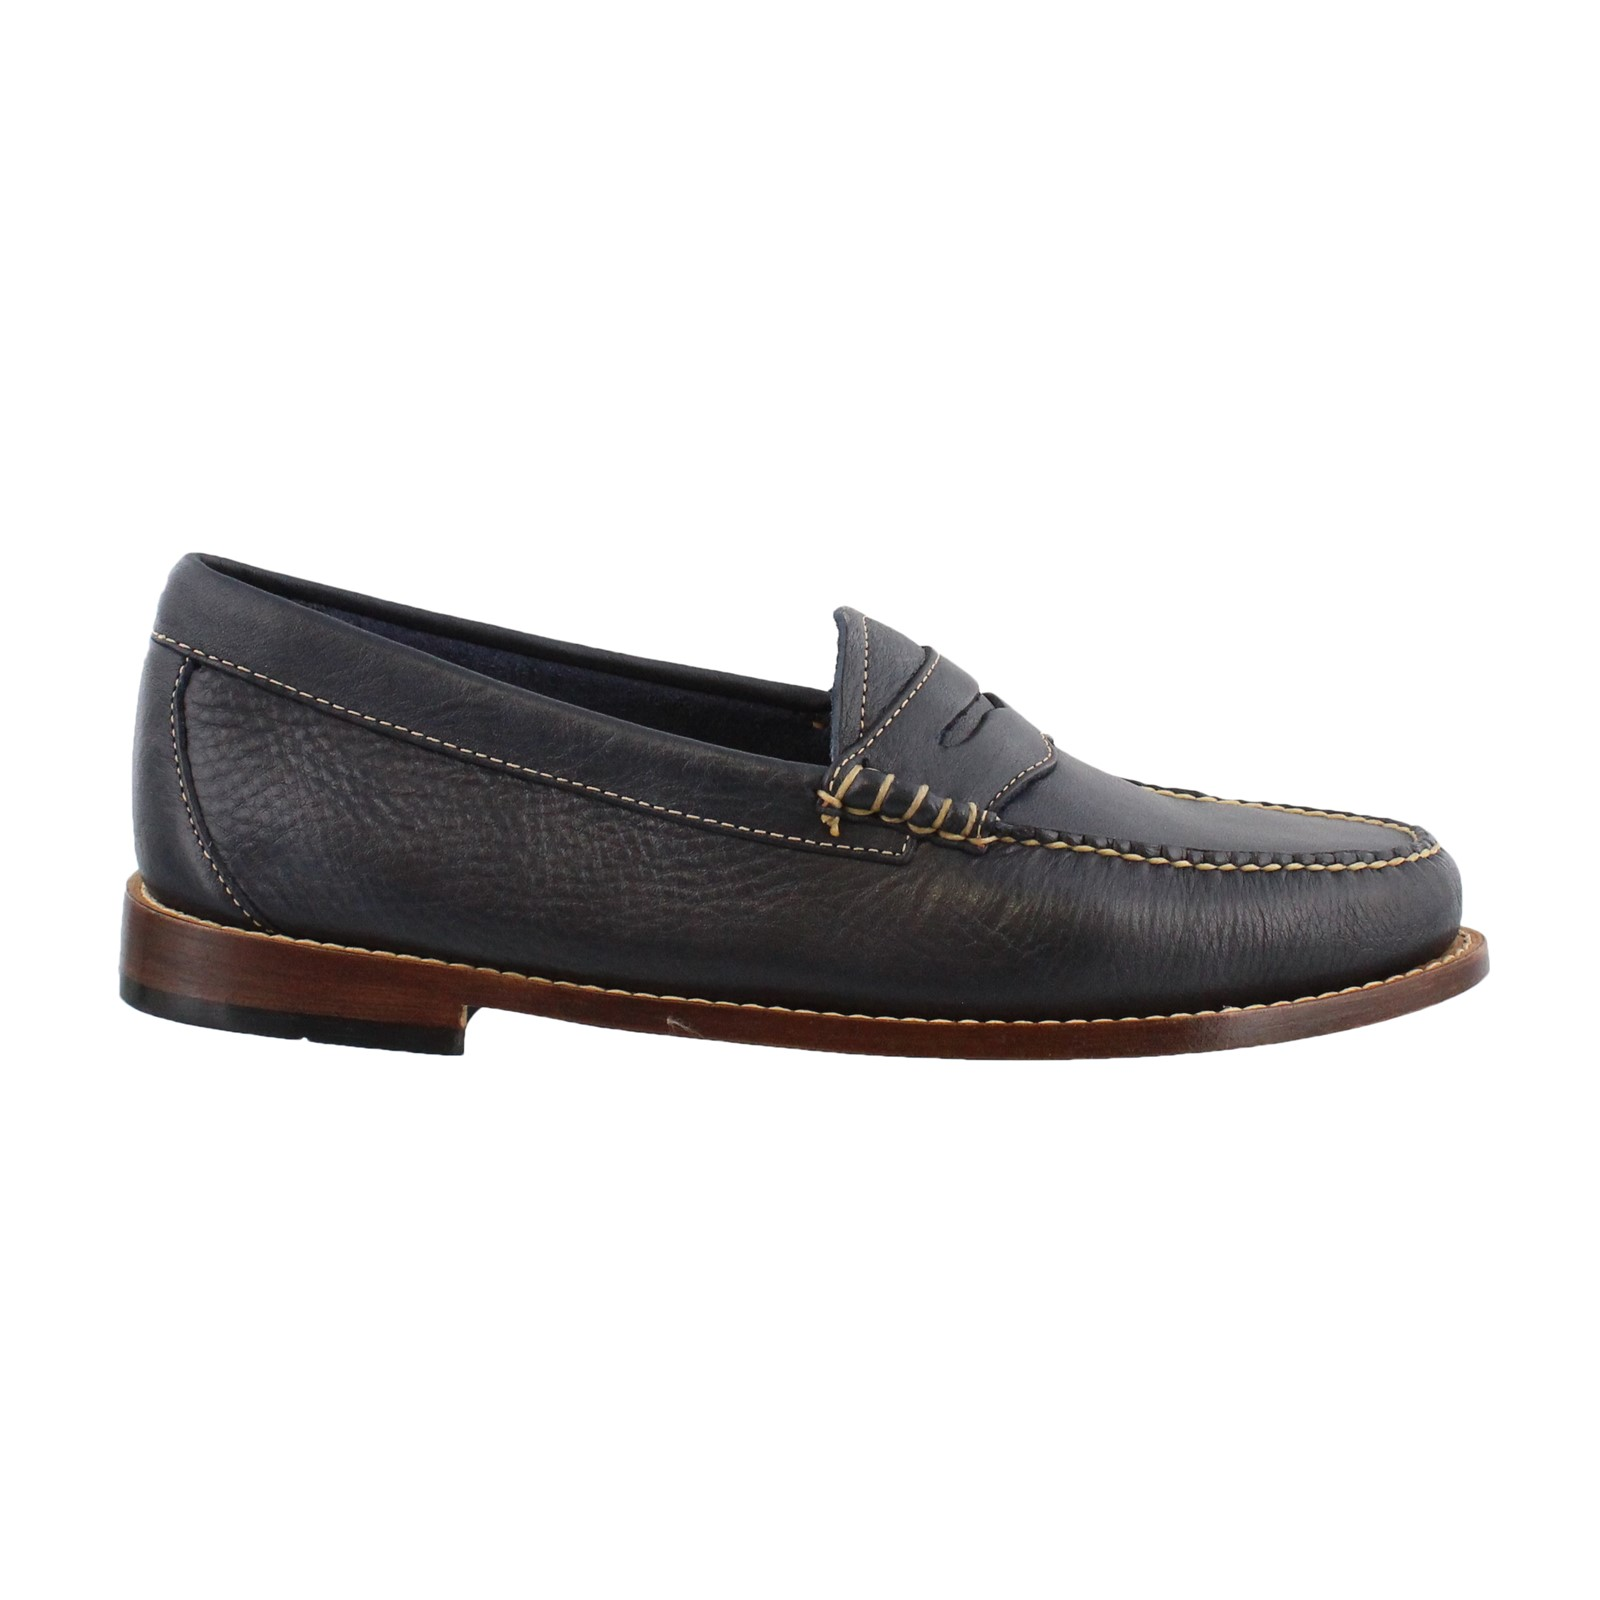 Women's GH Bass and Co, Weejuns Whitney Penny Loafers